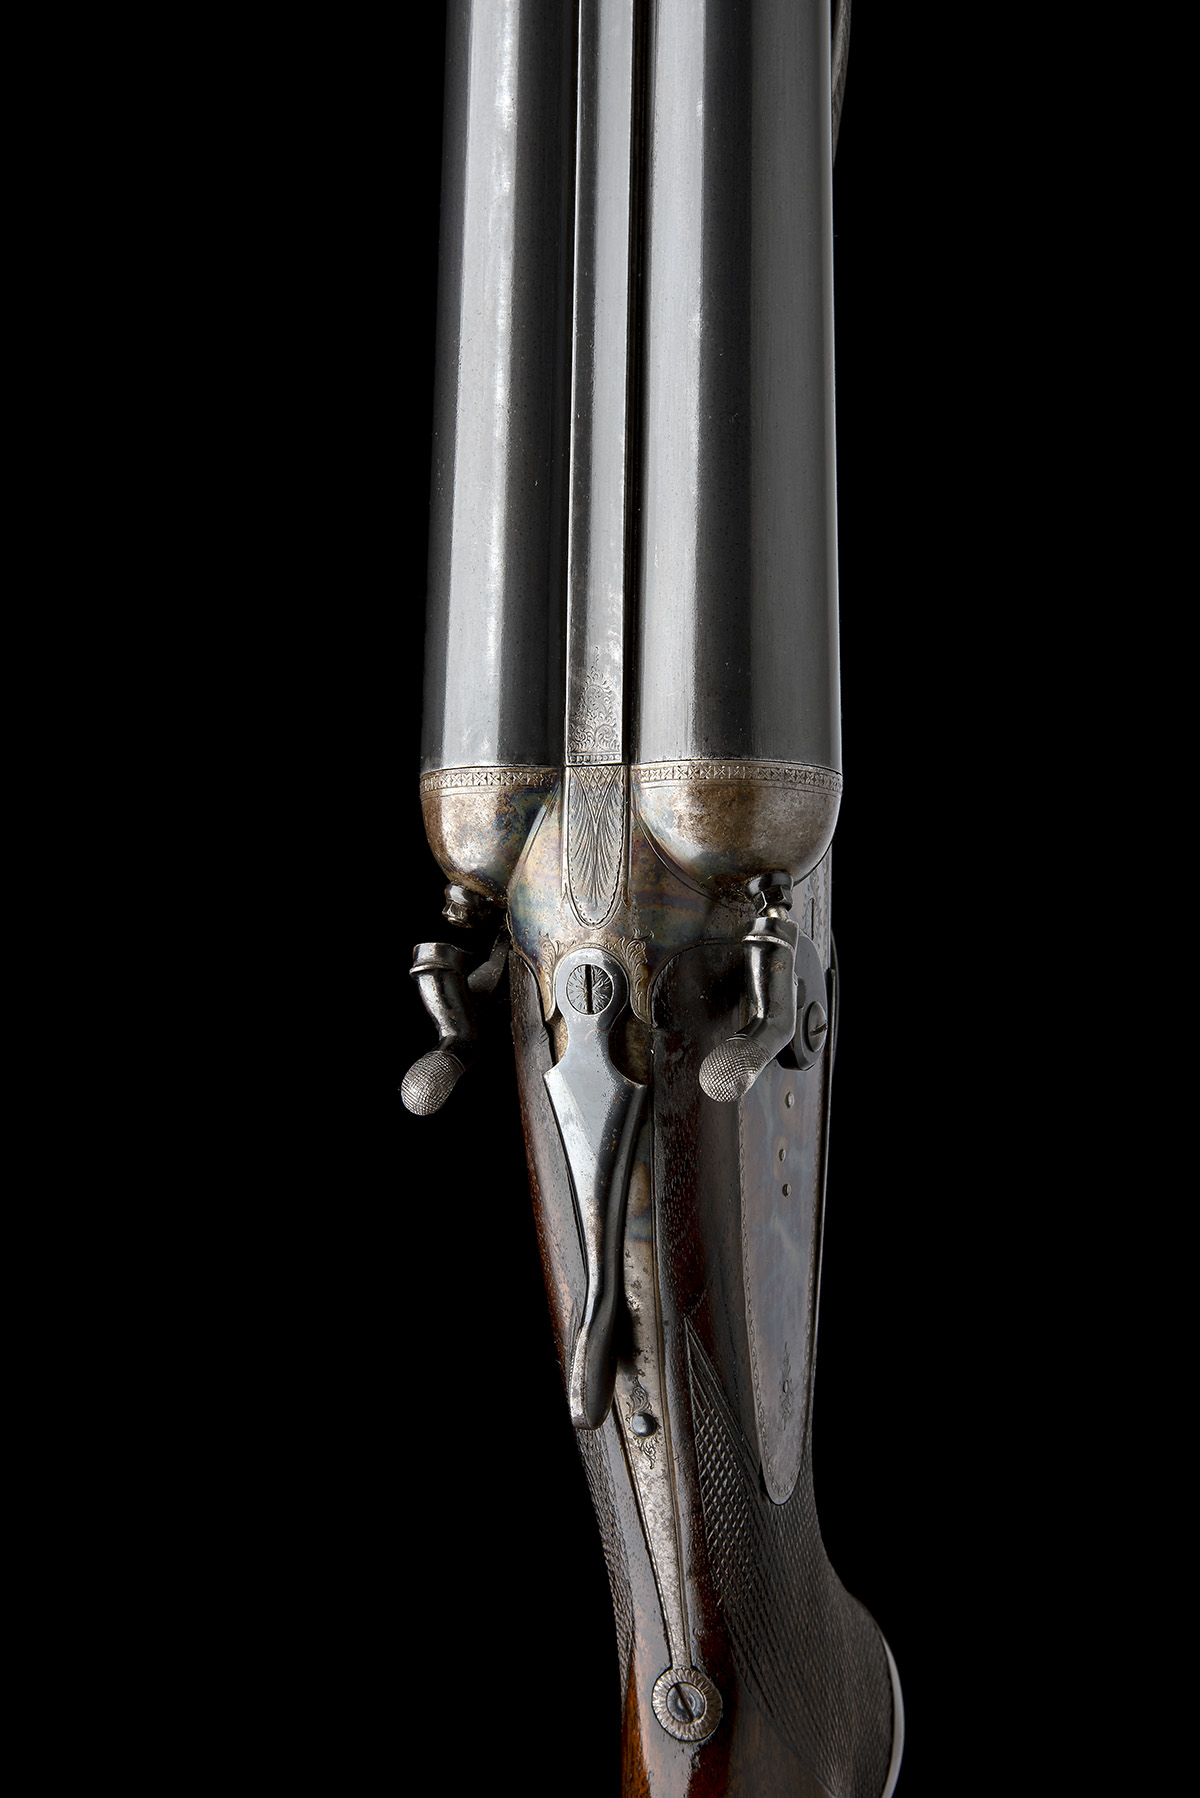 A. MYERS A MASSIVE 4-BORE (4 1/2IN.) DOUBLE-BARRELLED TOPLEVER HAMMERGUN, serial no. 806, for - Image 4 of 8